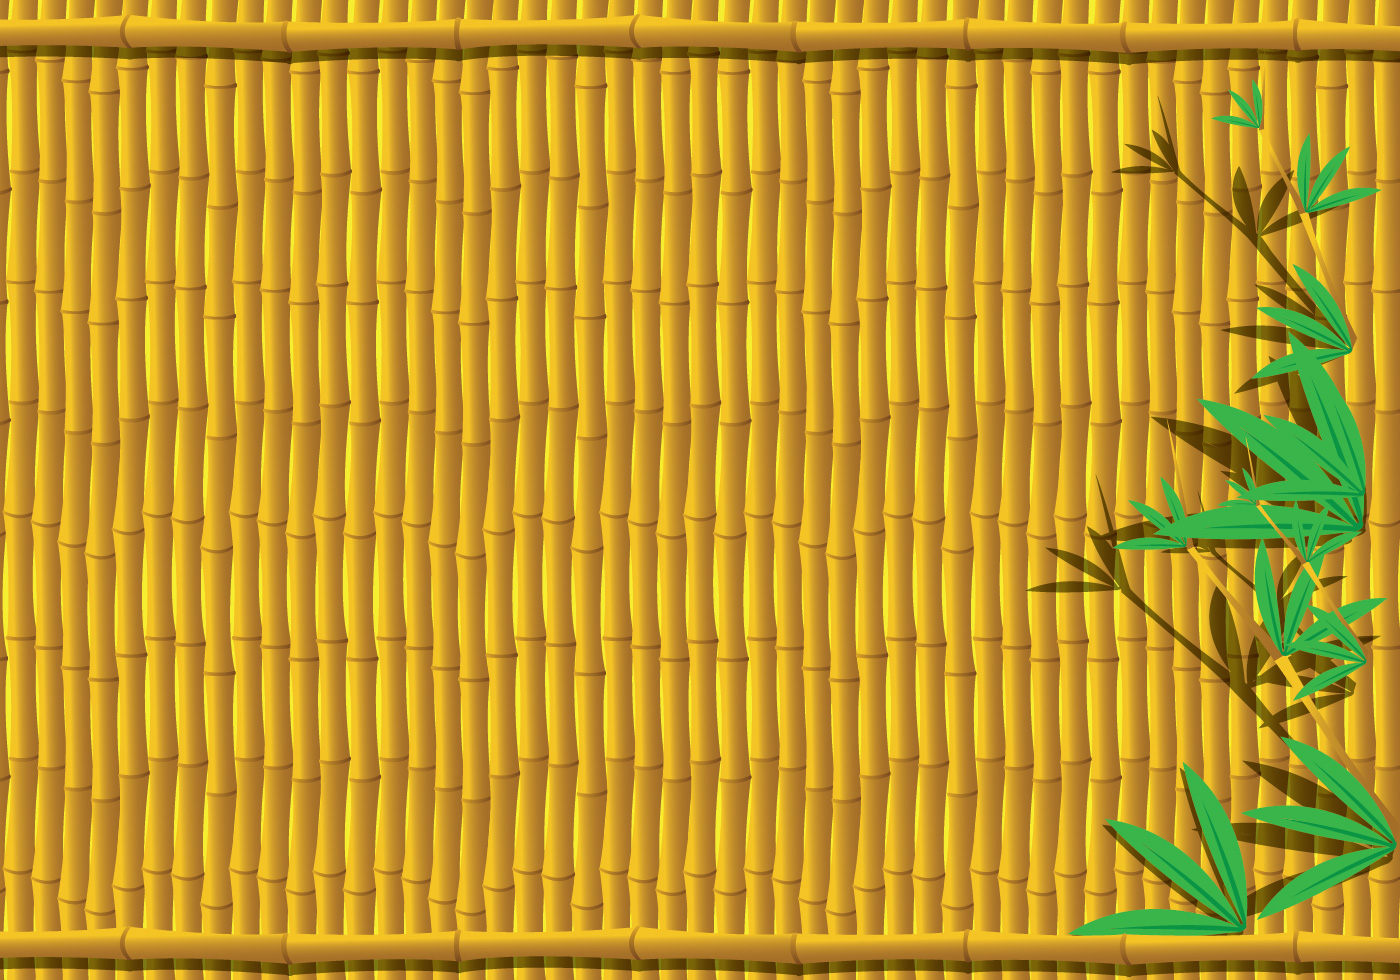 Bamboo Background - Download Free Vector Art, Stock Graphics & Images